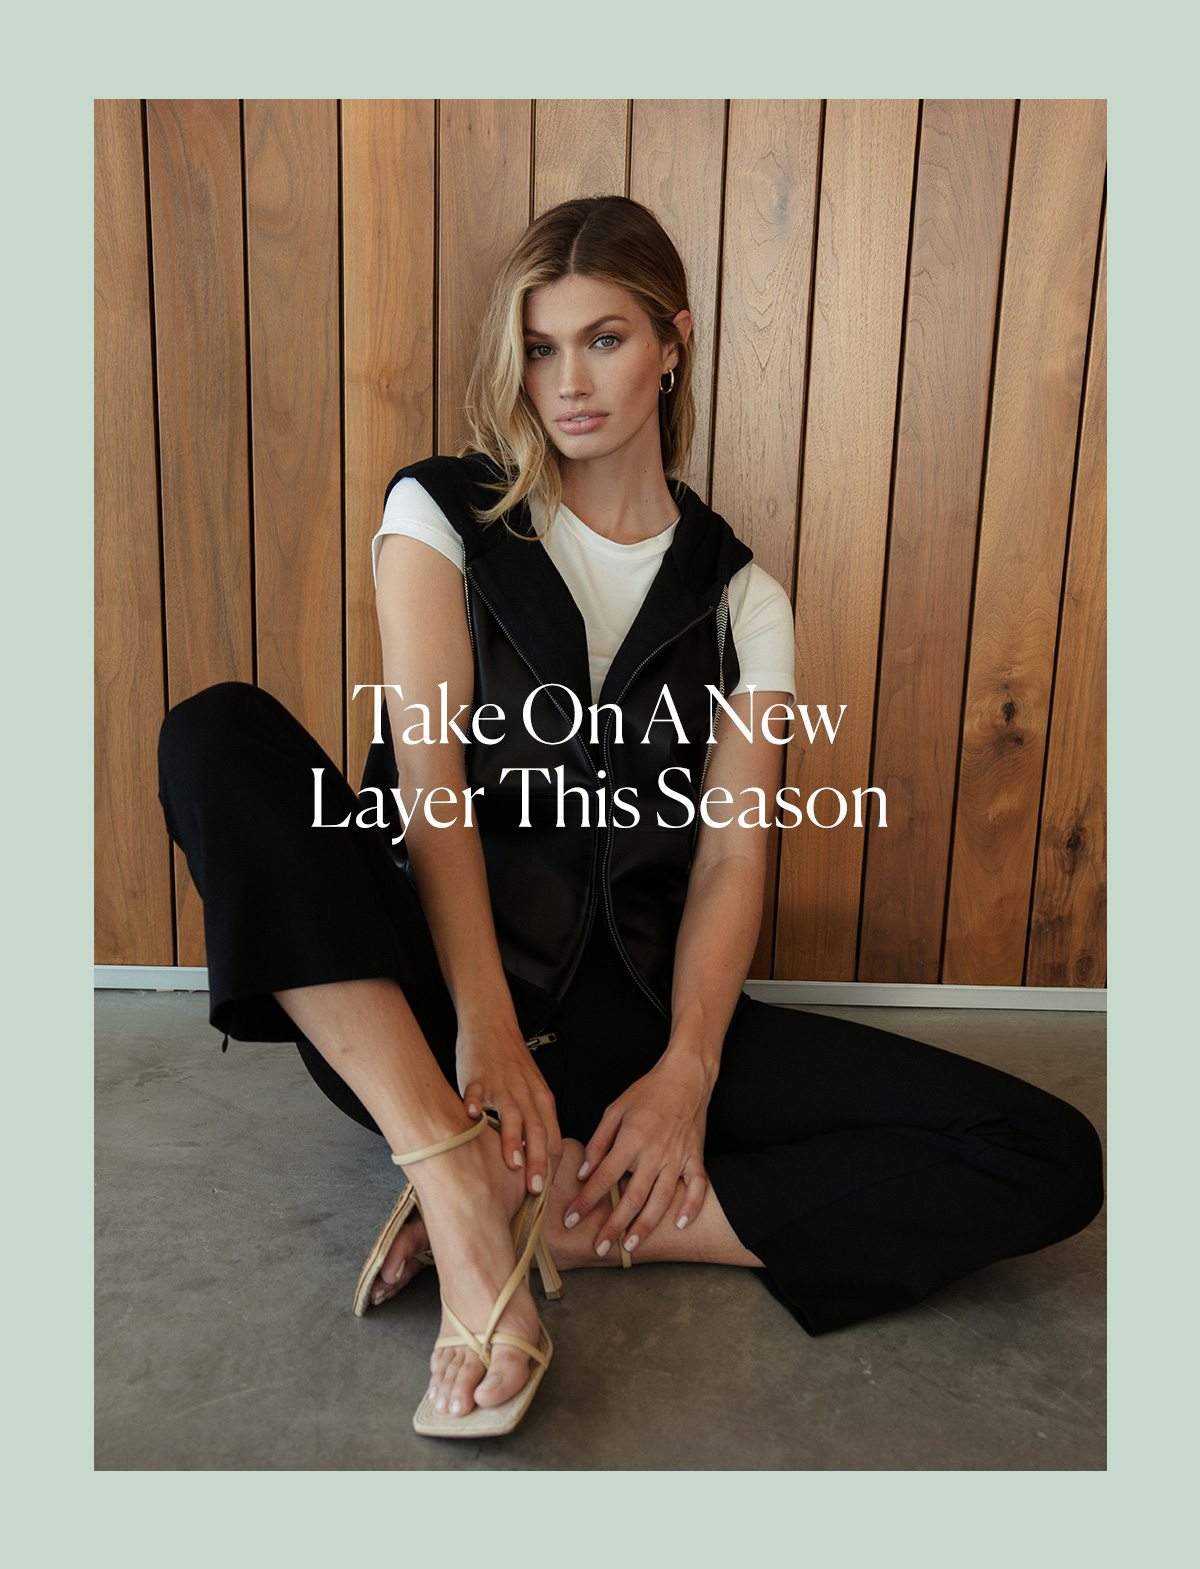 Take on a New Layer this Season